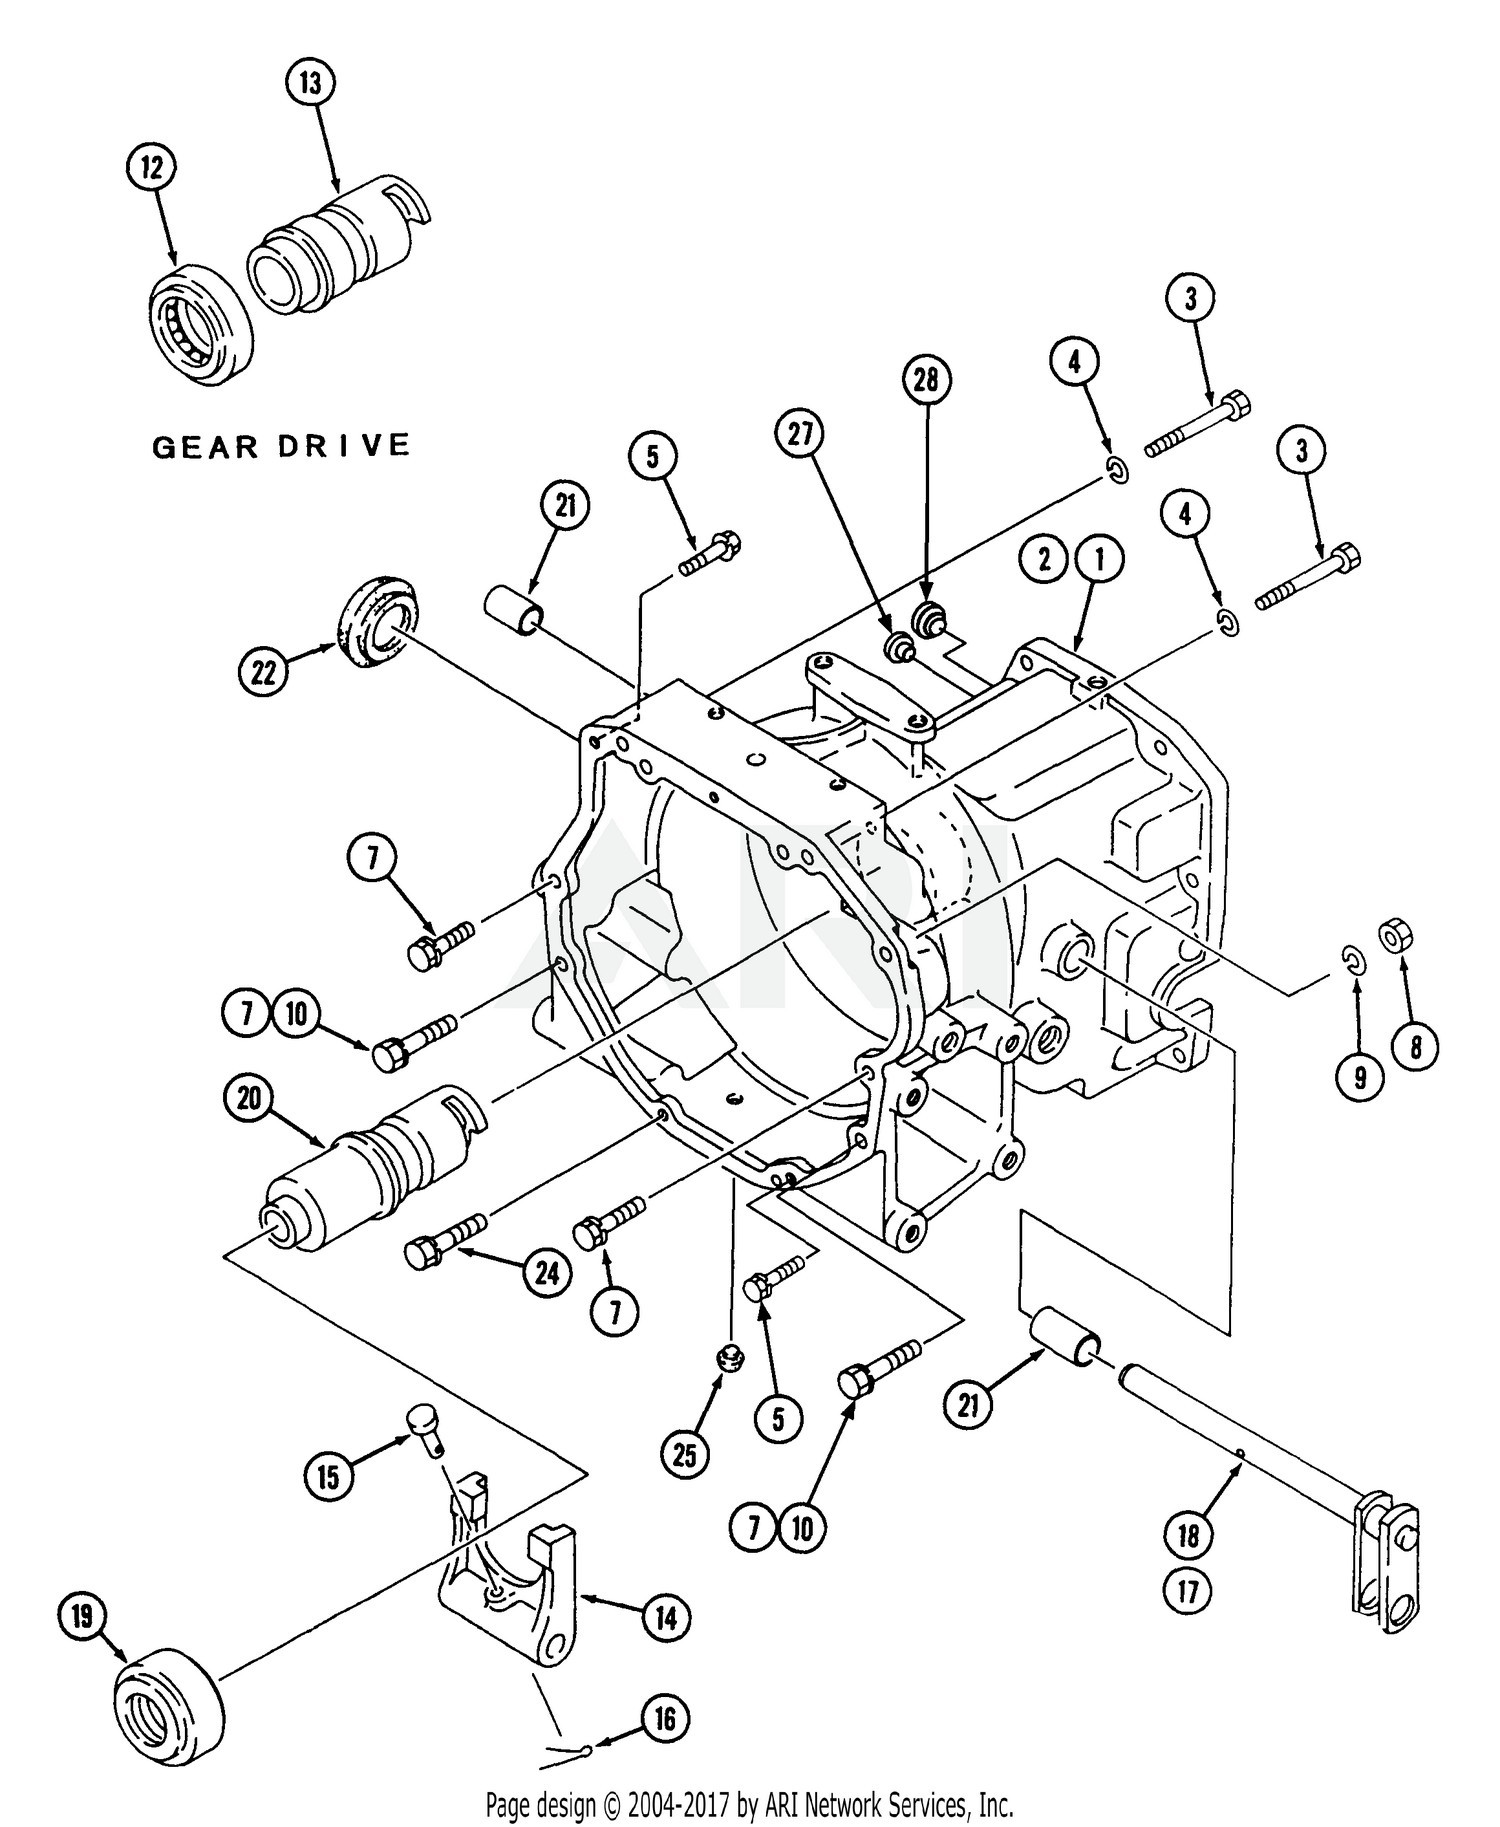 Engine Parts Diagram with Dimensions Auto Engine Parts Diagram Cub Cadet Parts Diagrams Cub Cadet 7194 Of Engine Parts Diagram with Dimensions